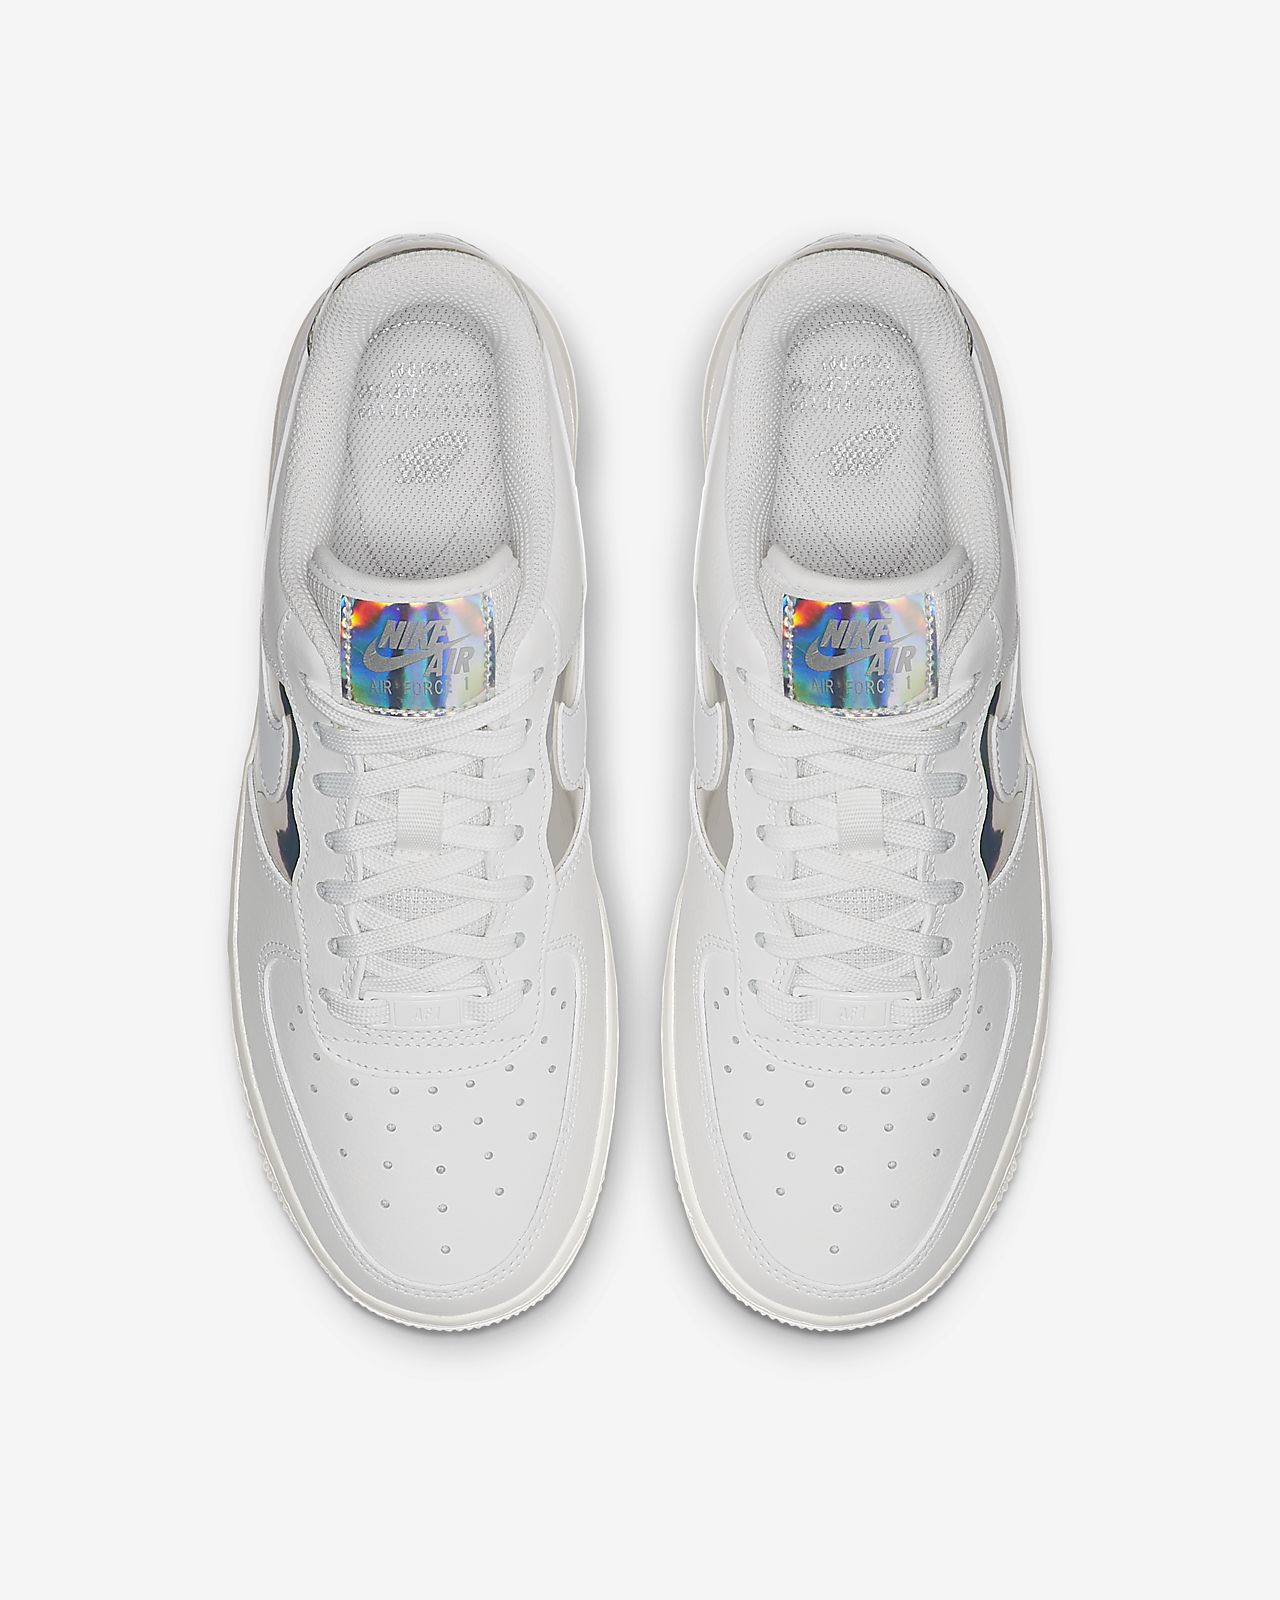 Femme Low Force 1 Chaussure Pour Nike Air 8wmNn0v